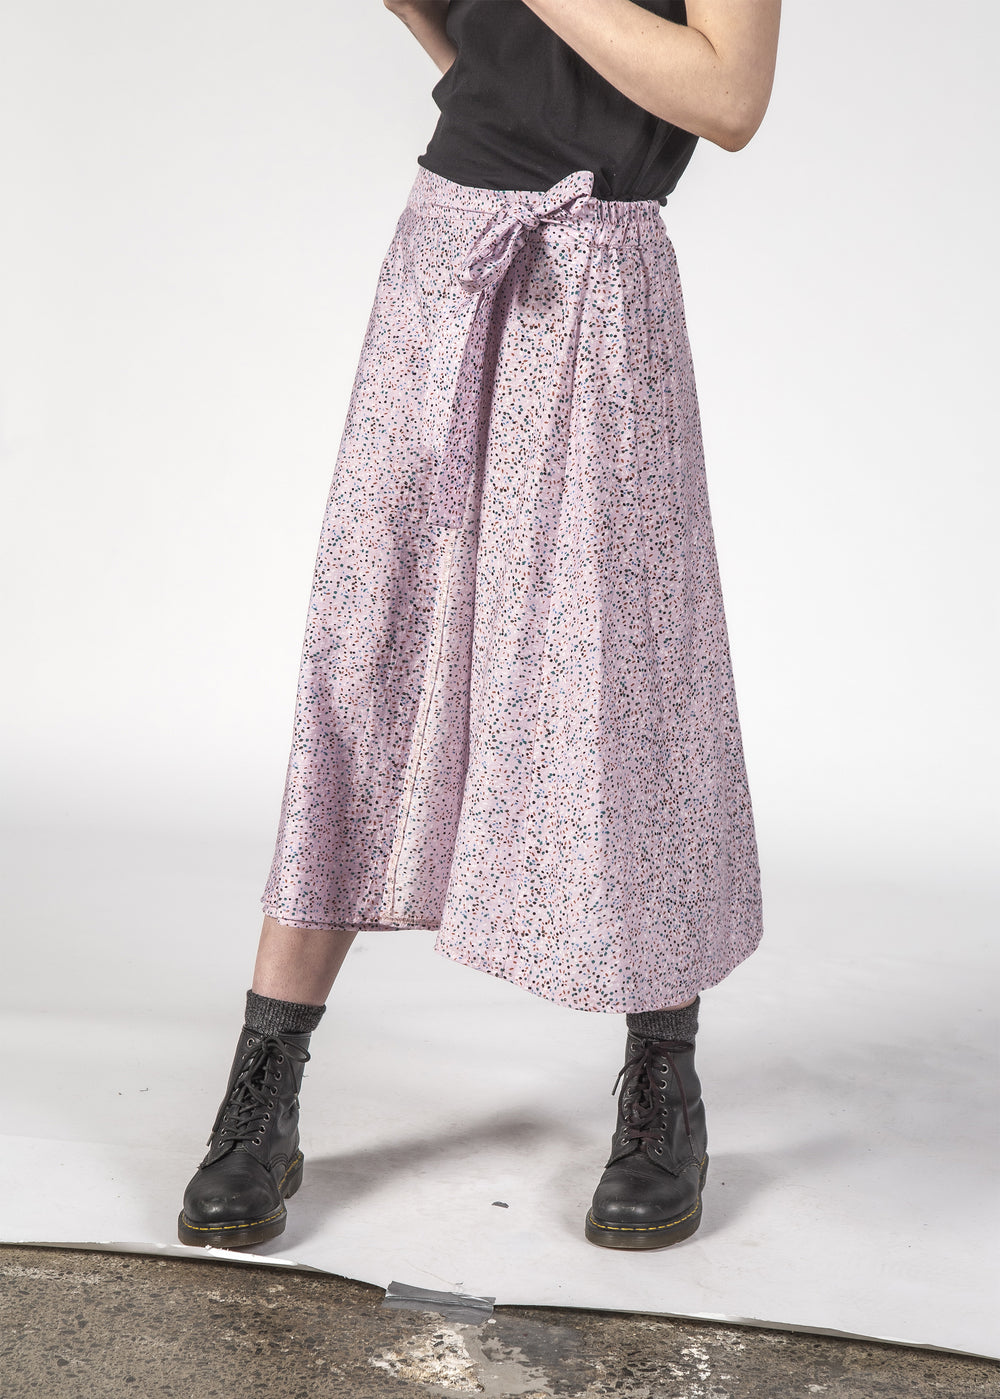 FREEDOM SKIRT - LILAC SPECKLE